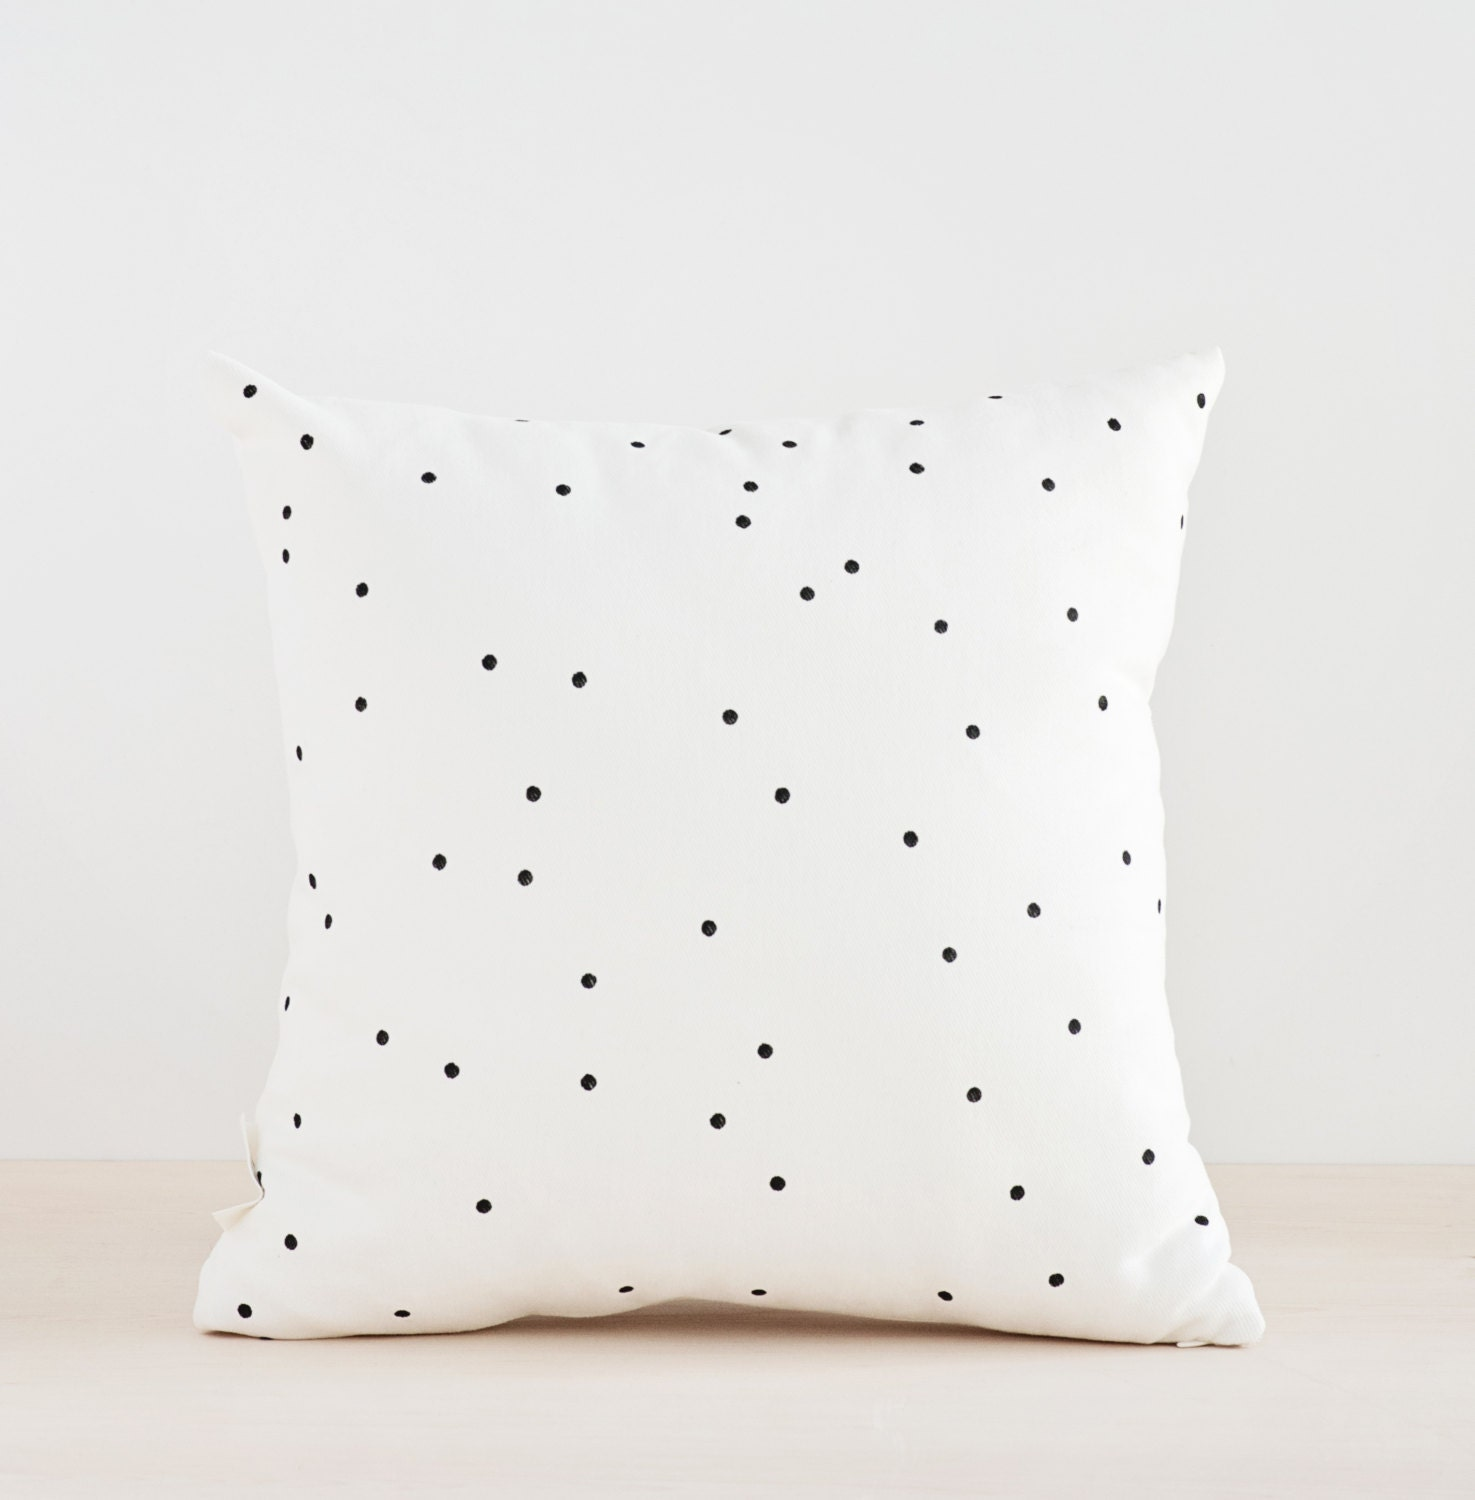 SALE!!! Black Dots Pillow Cover, Minimalist Pillow, Hand Painted Pillow,  Decorative Cushion, Black And White Pillow Cover, 14x14